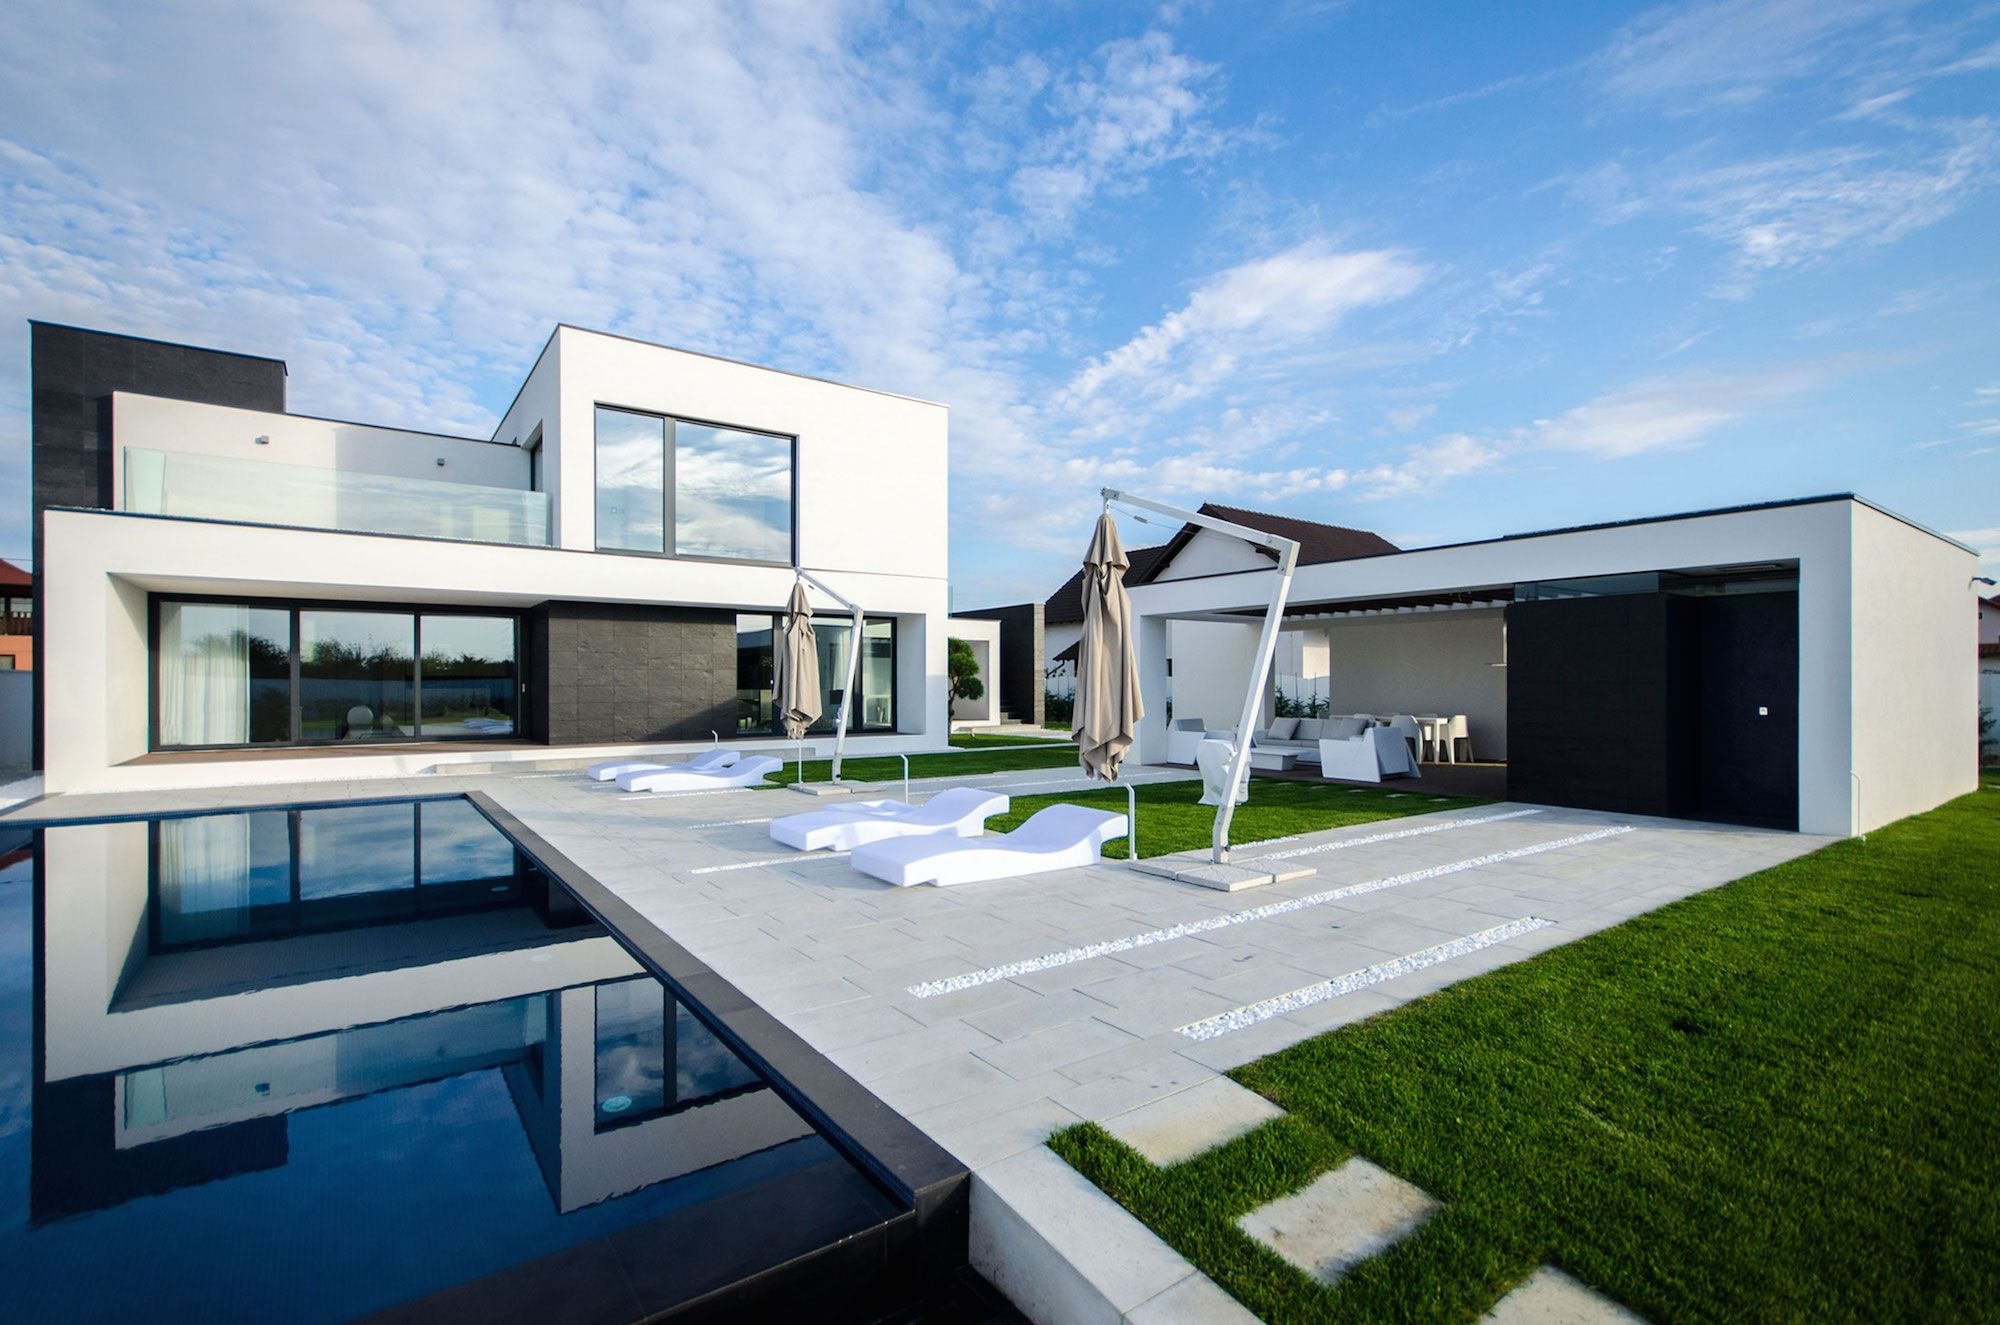 Ultramodern c house in timisoara by parasite studio for Home architecture blog